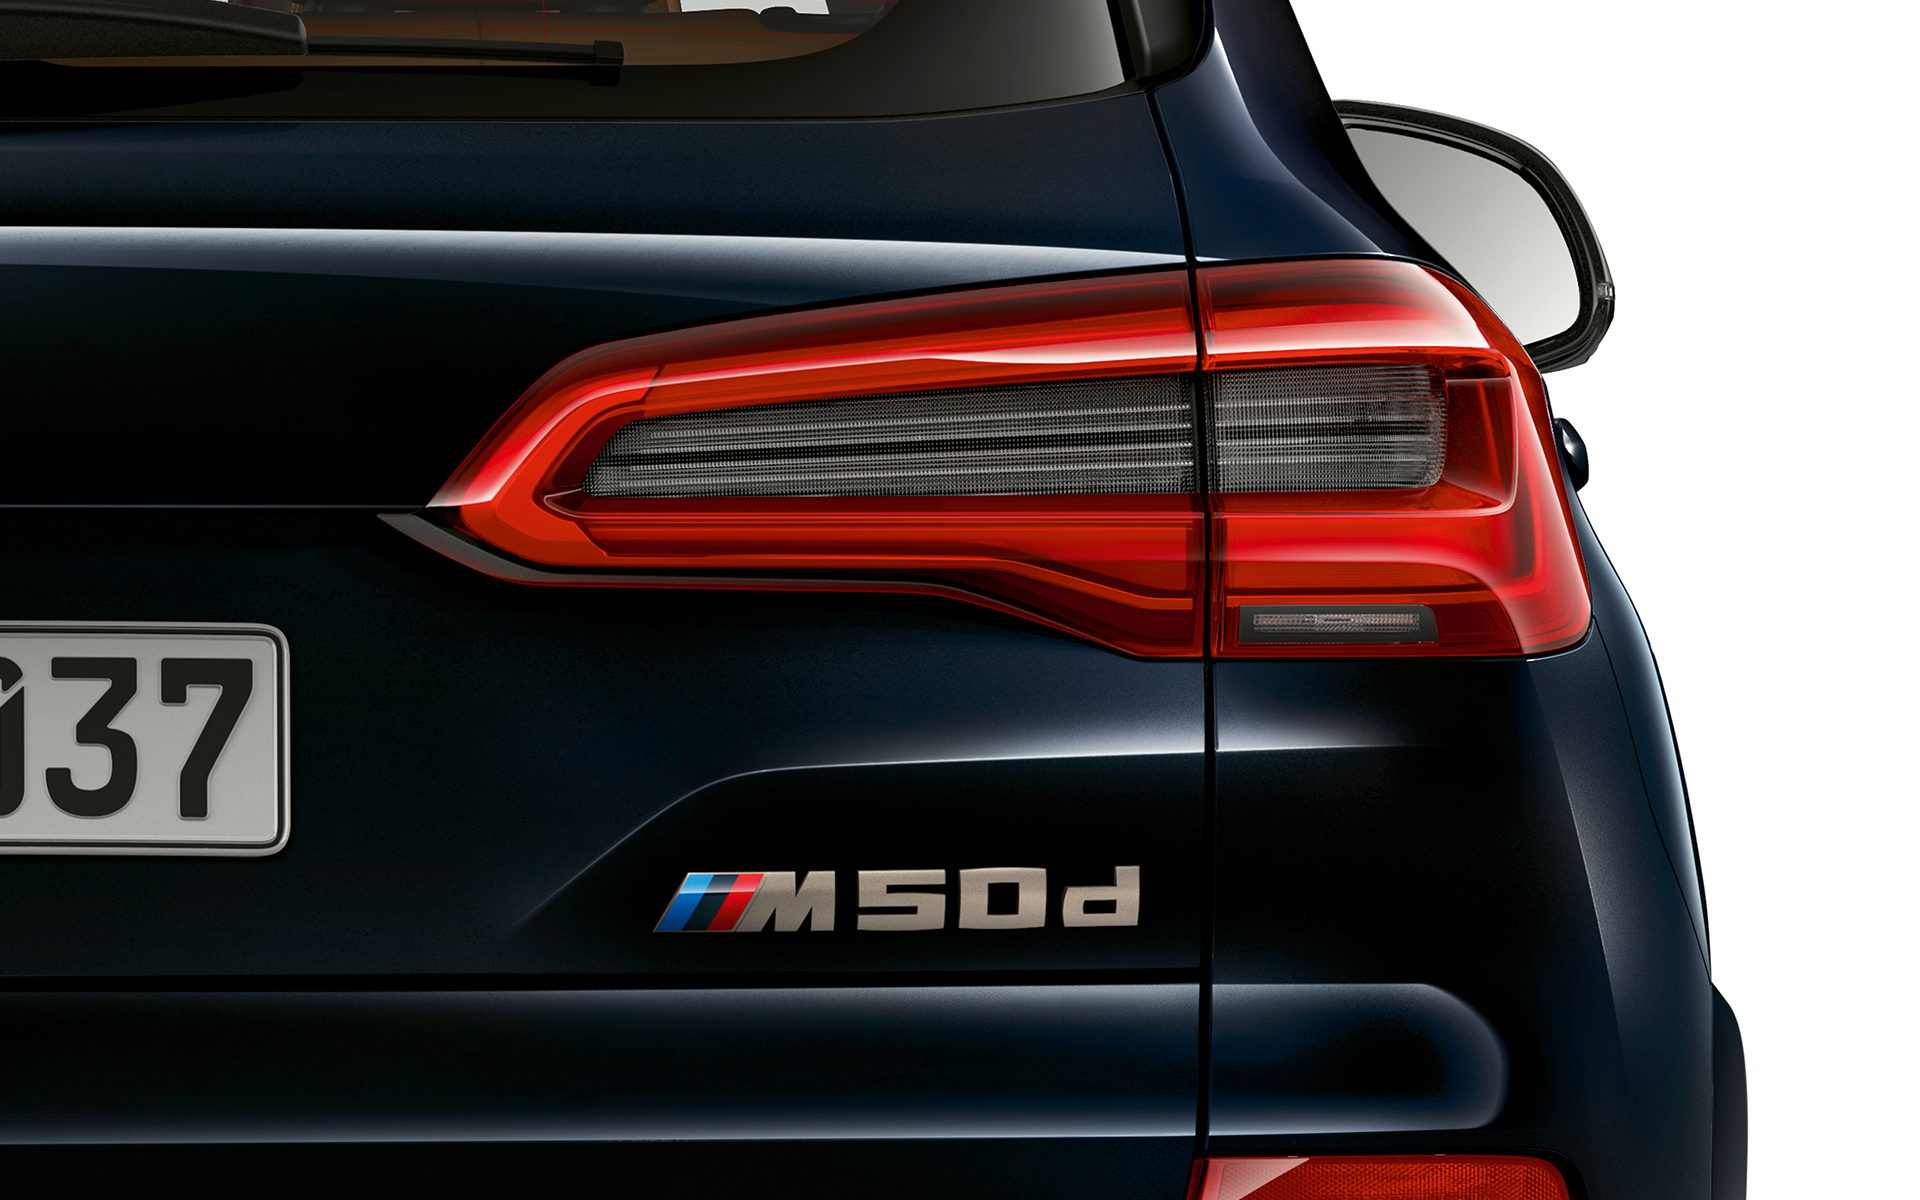 Detailed shot of the model designation for the BMW X5 M50d